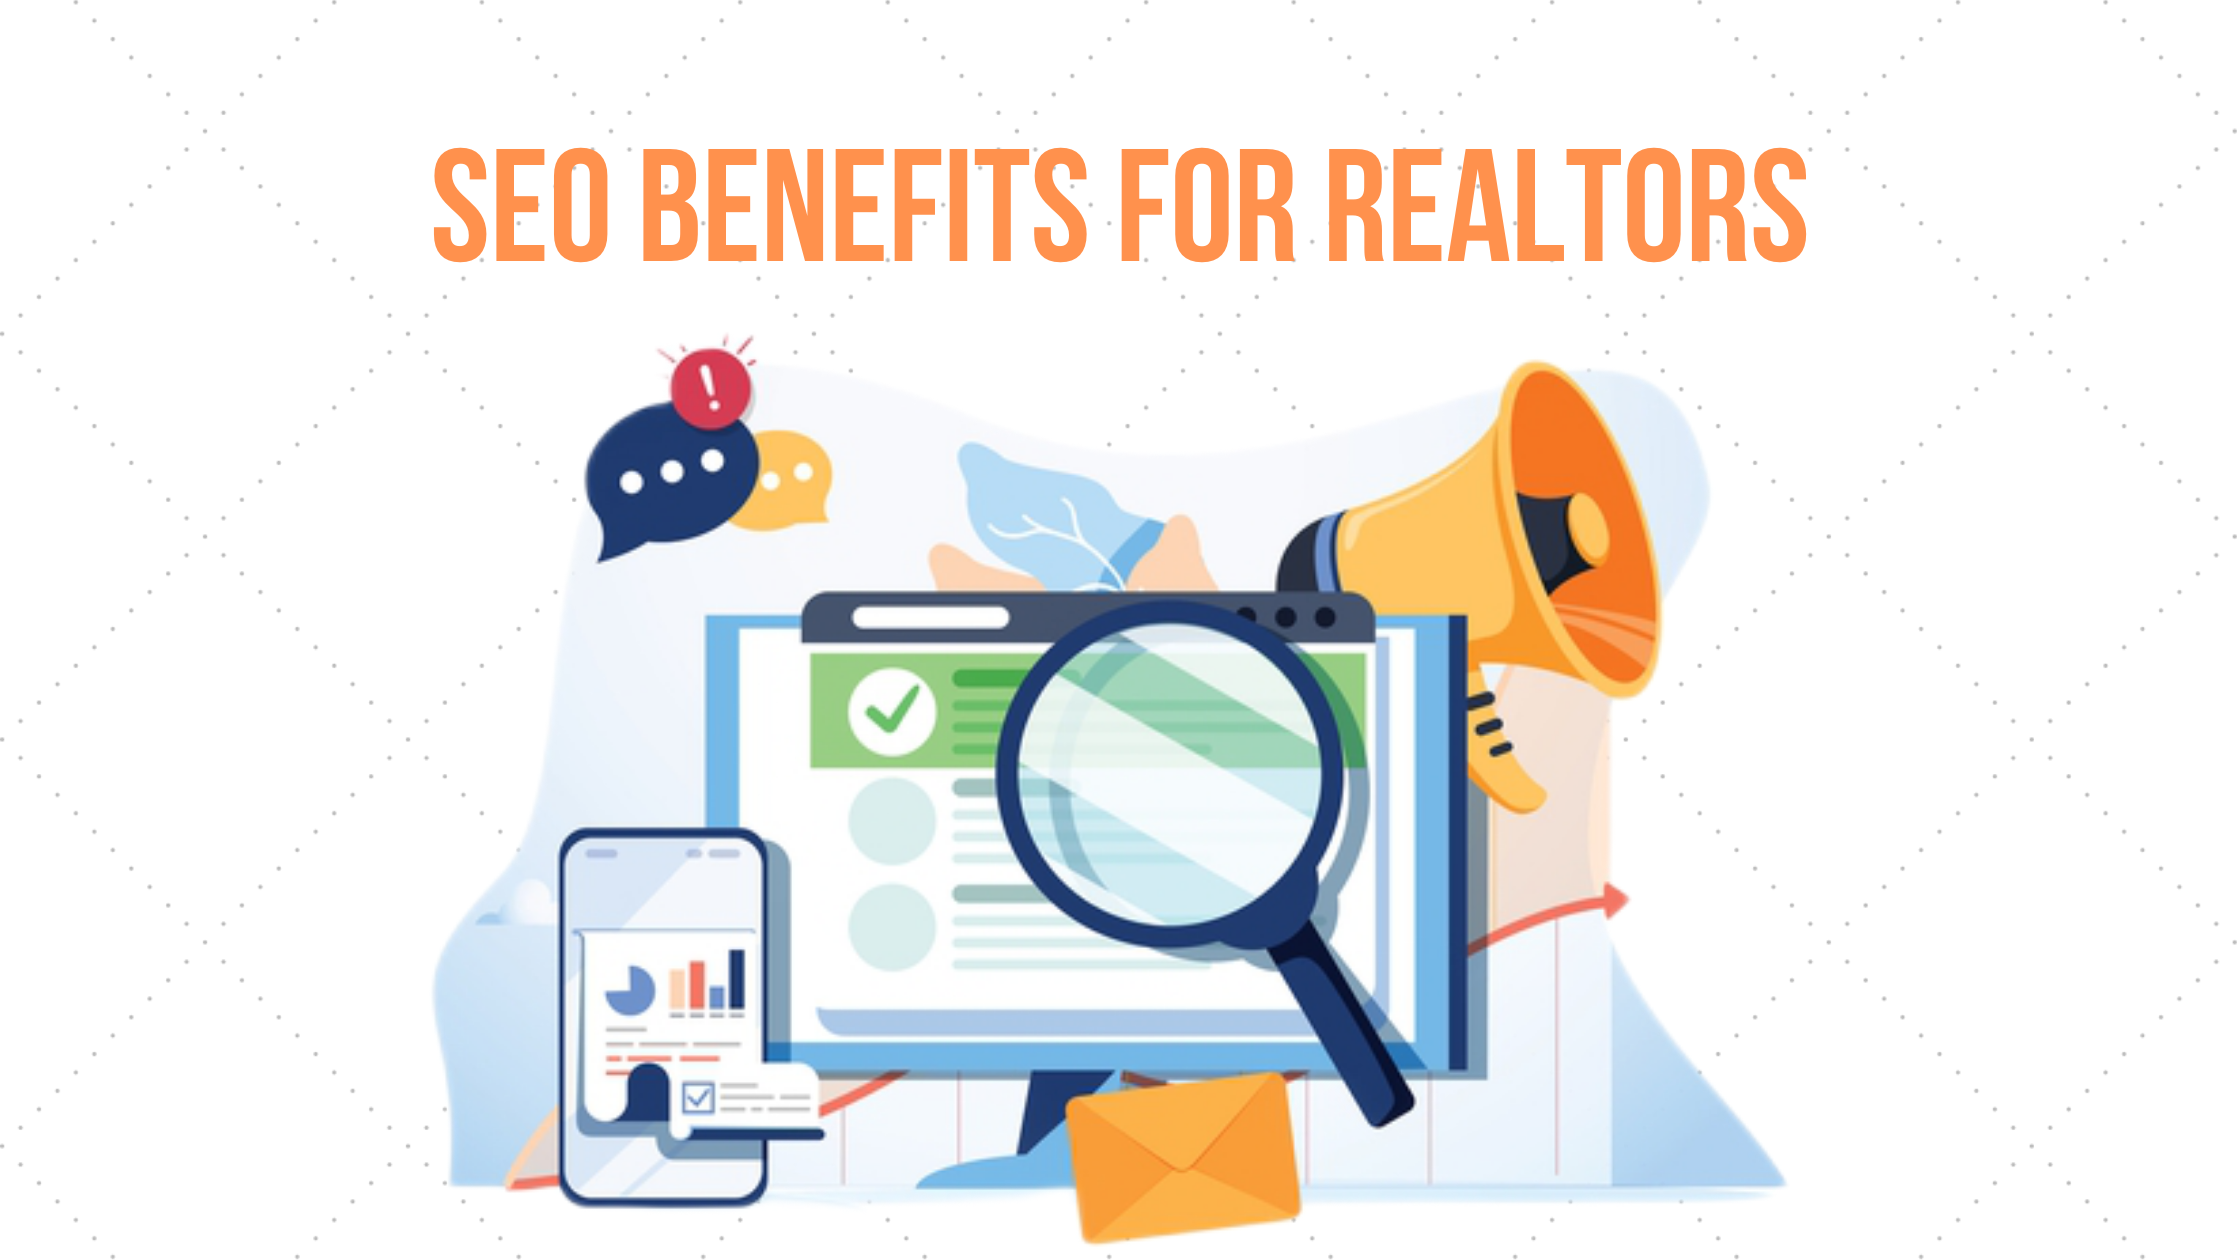 SEO Benefits for Realtors